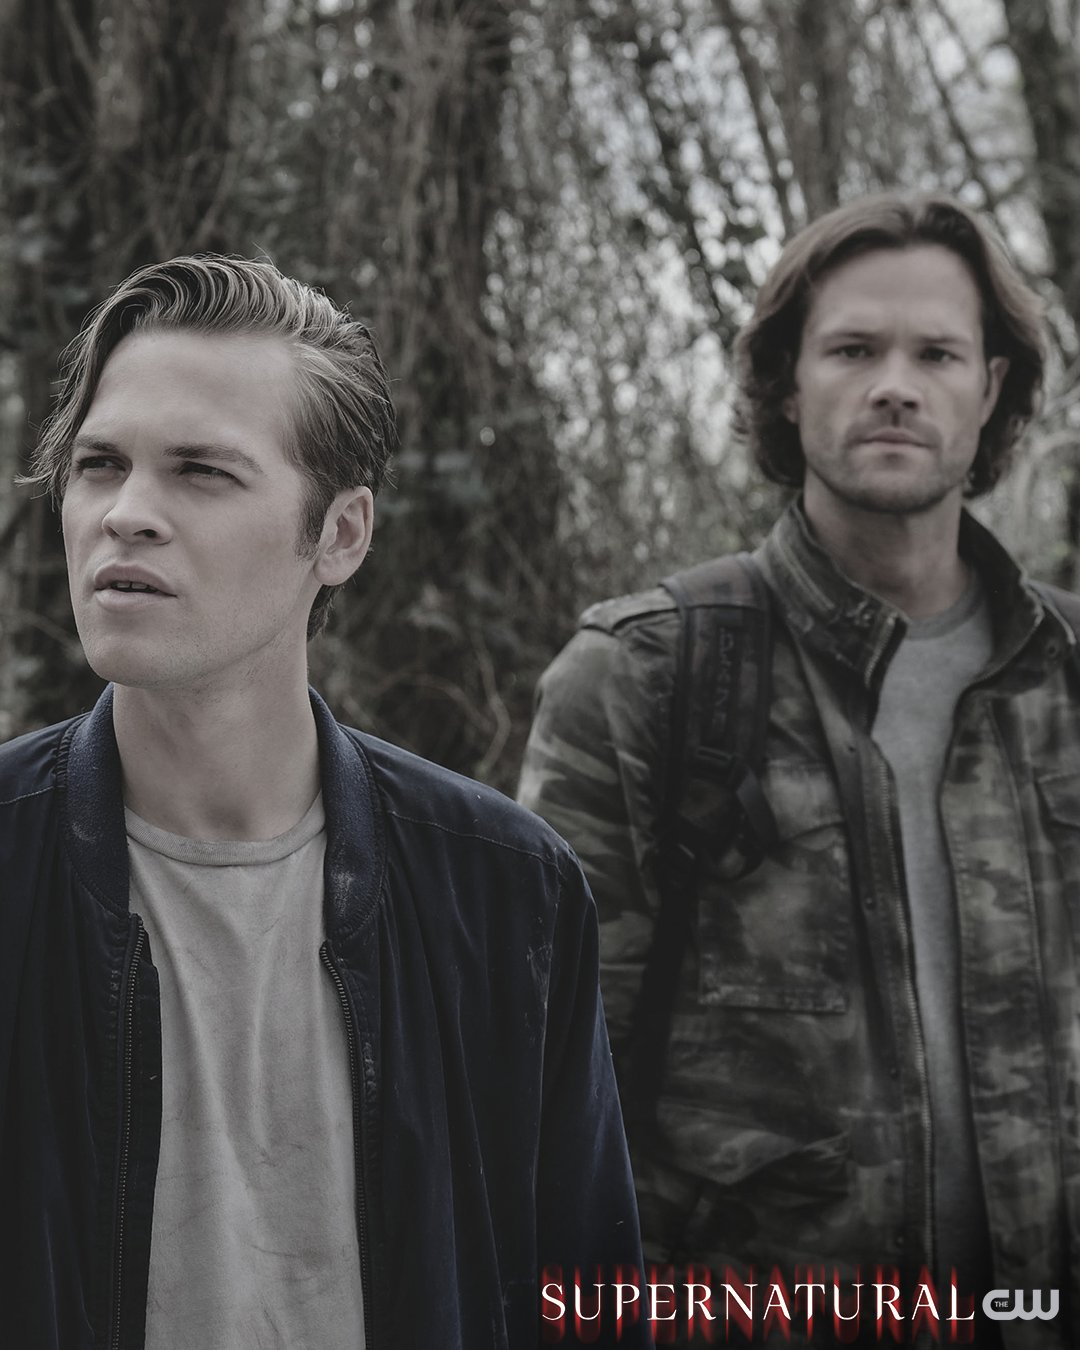 Jack has so many questions, but will he like the answers? Stream #Supernatural for free now: https://t.co/6qfYB21MYh https://t.co/ohg55EjQ2v